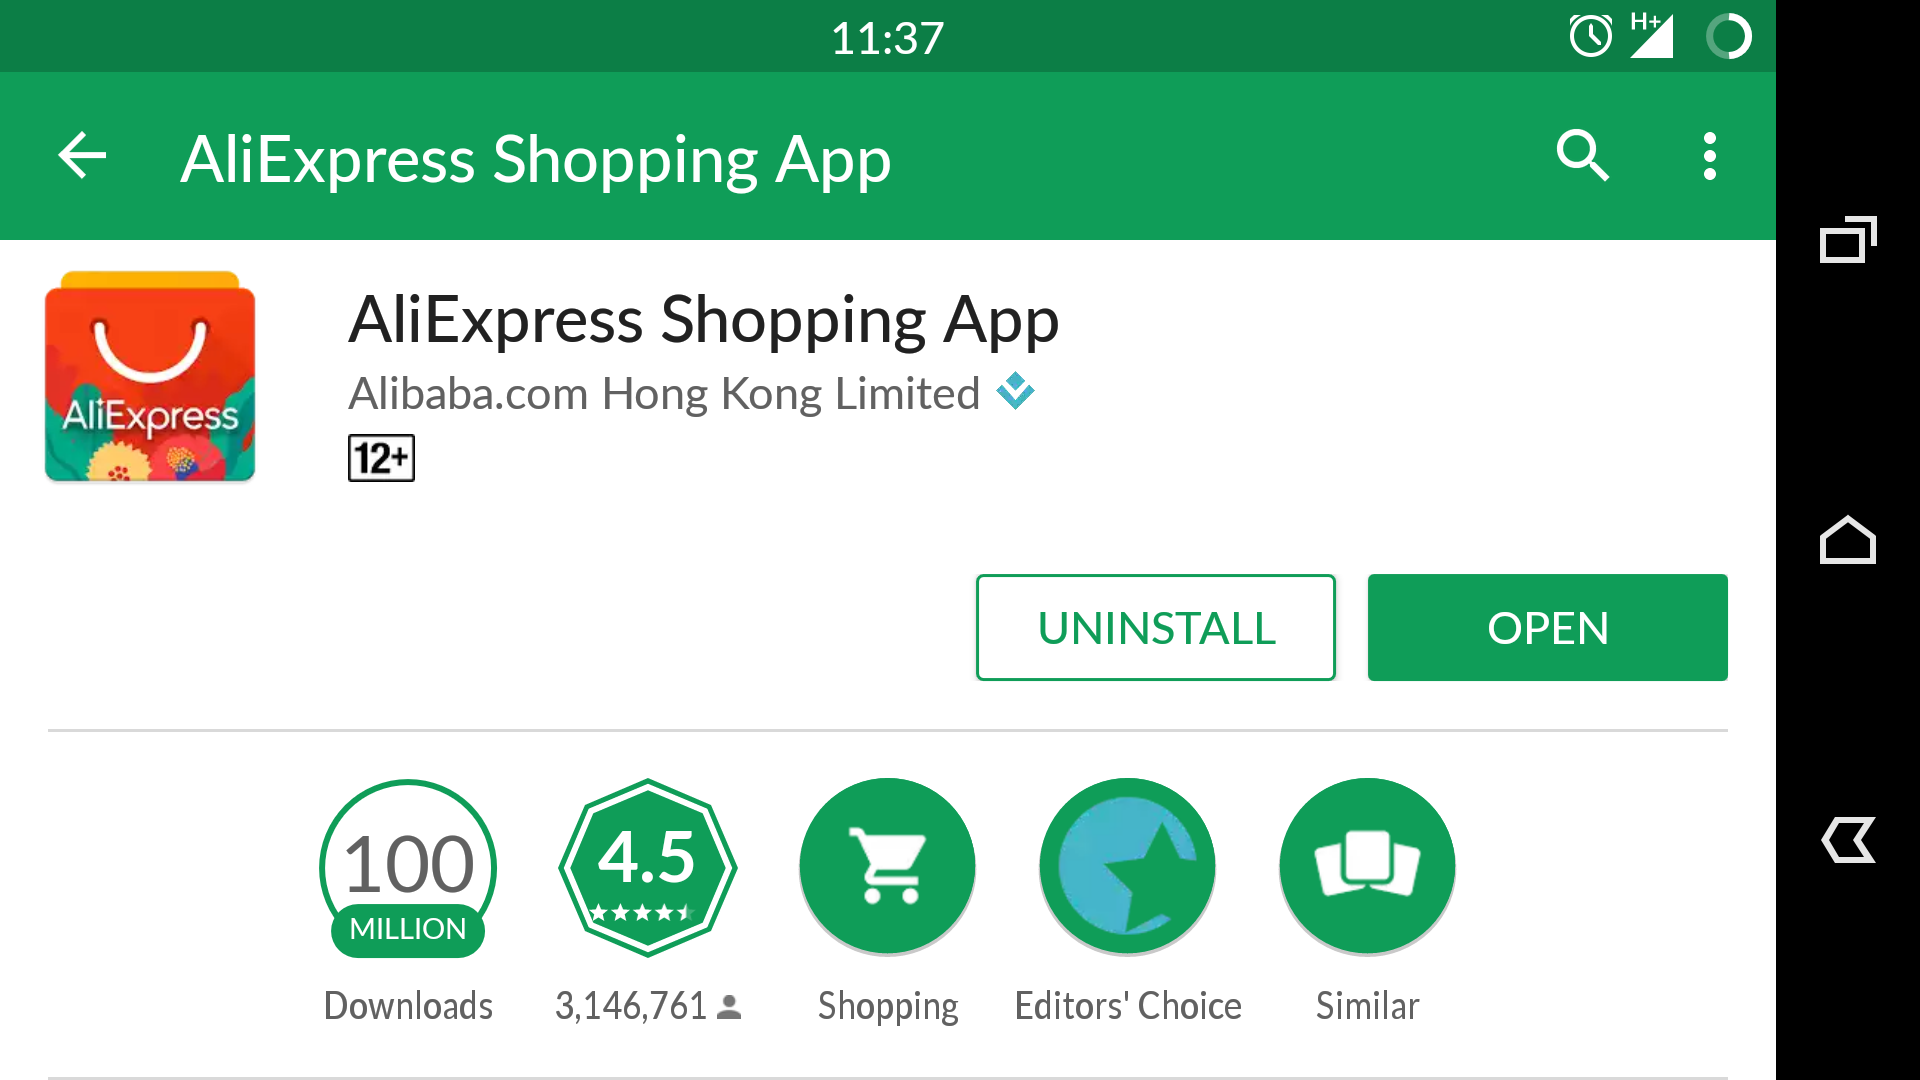 Установка приложения Aliexpress Shopping App